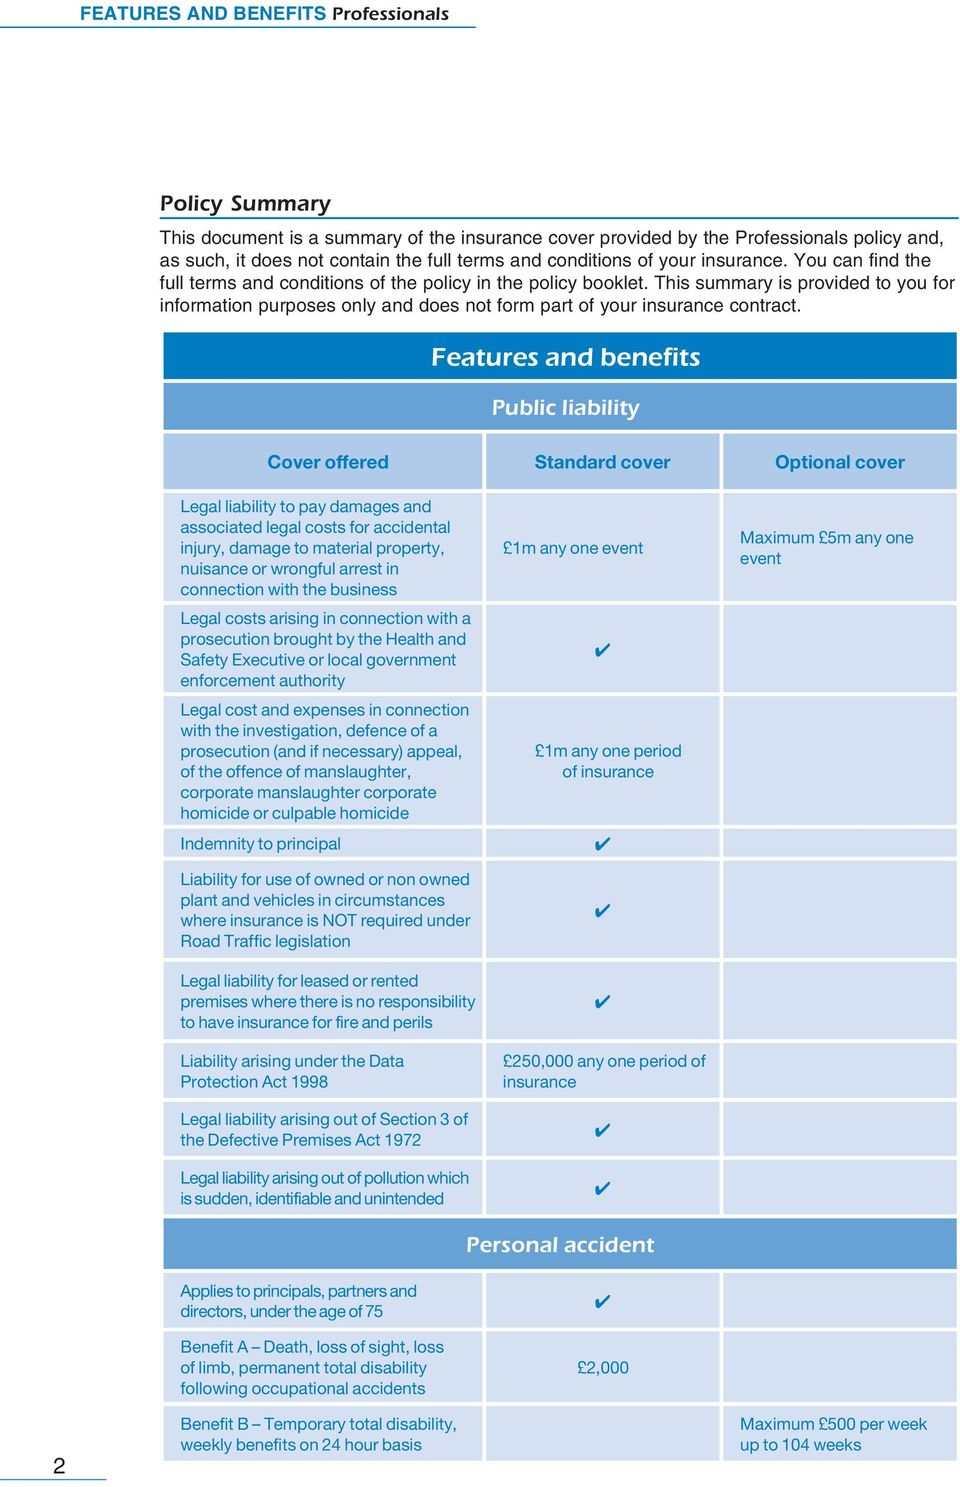 This summary is provided to you for information purposes only and does not form part of your insurance contract.